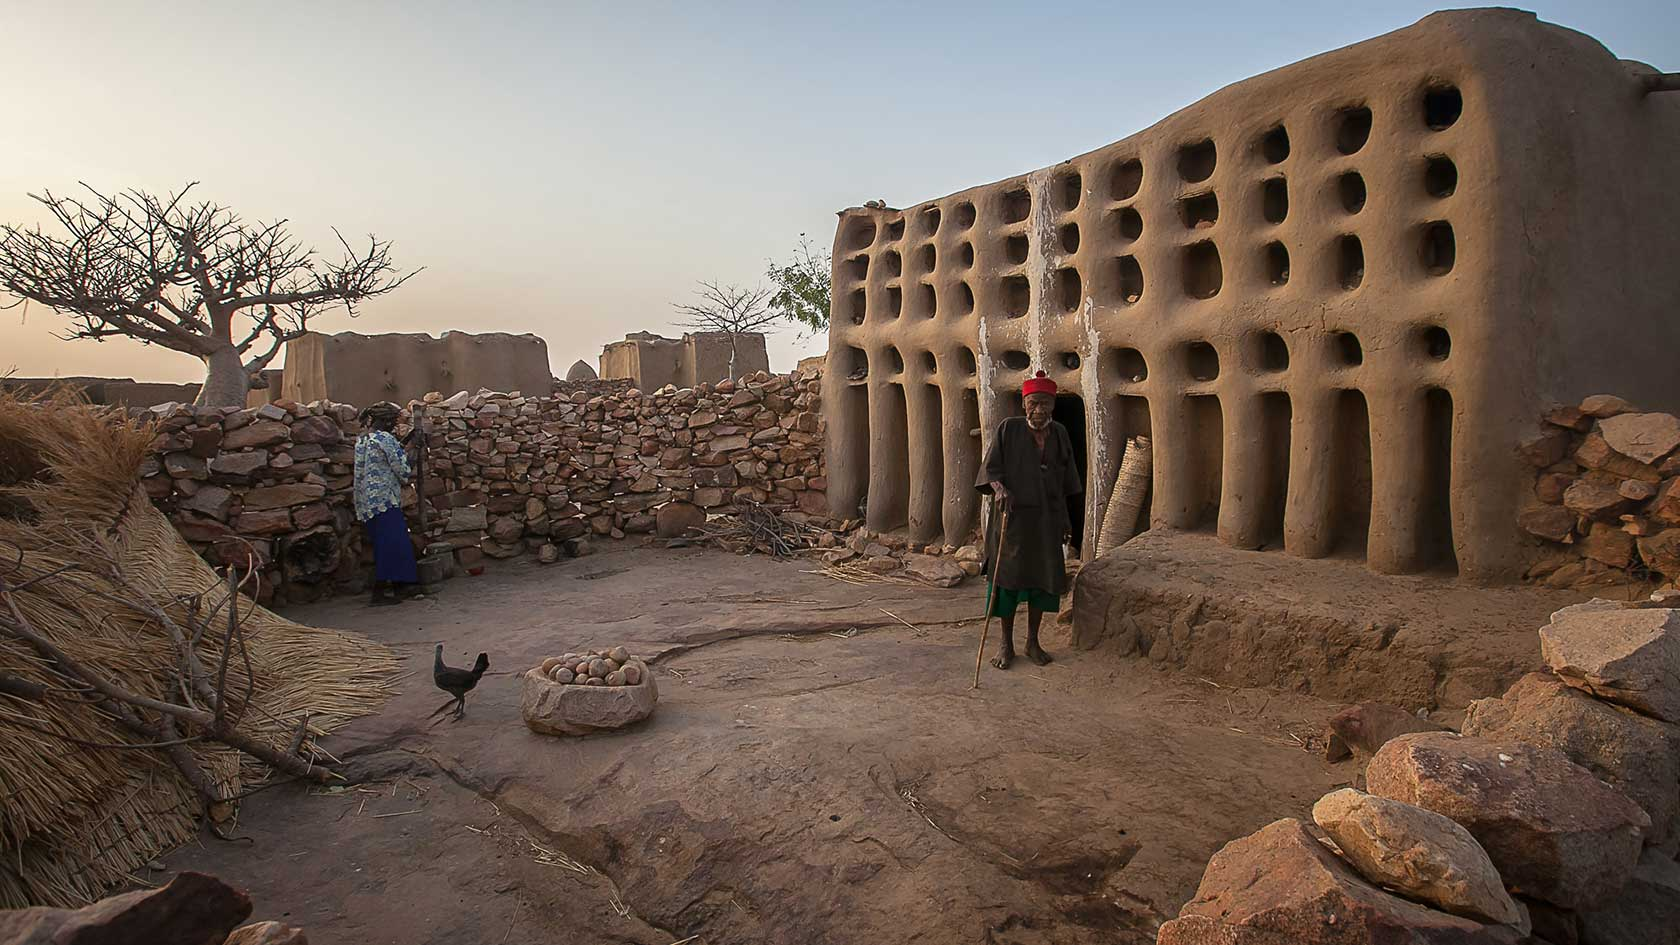 anthony-pappone-mali-africa-6